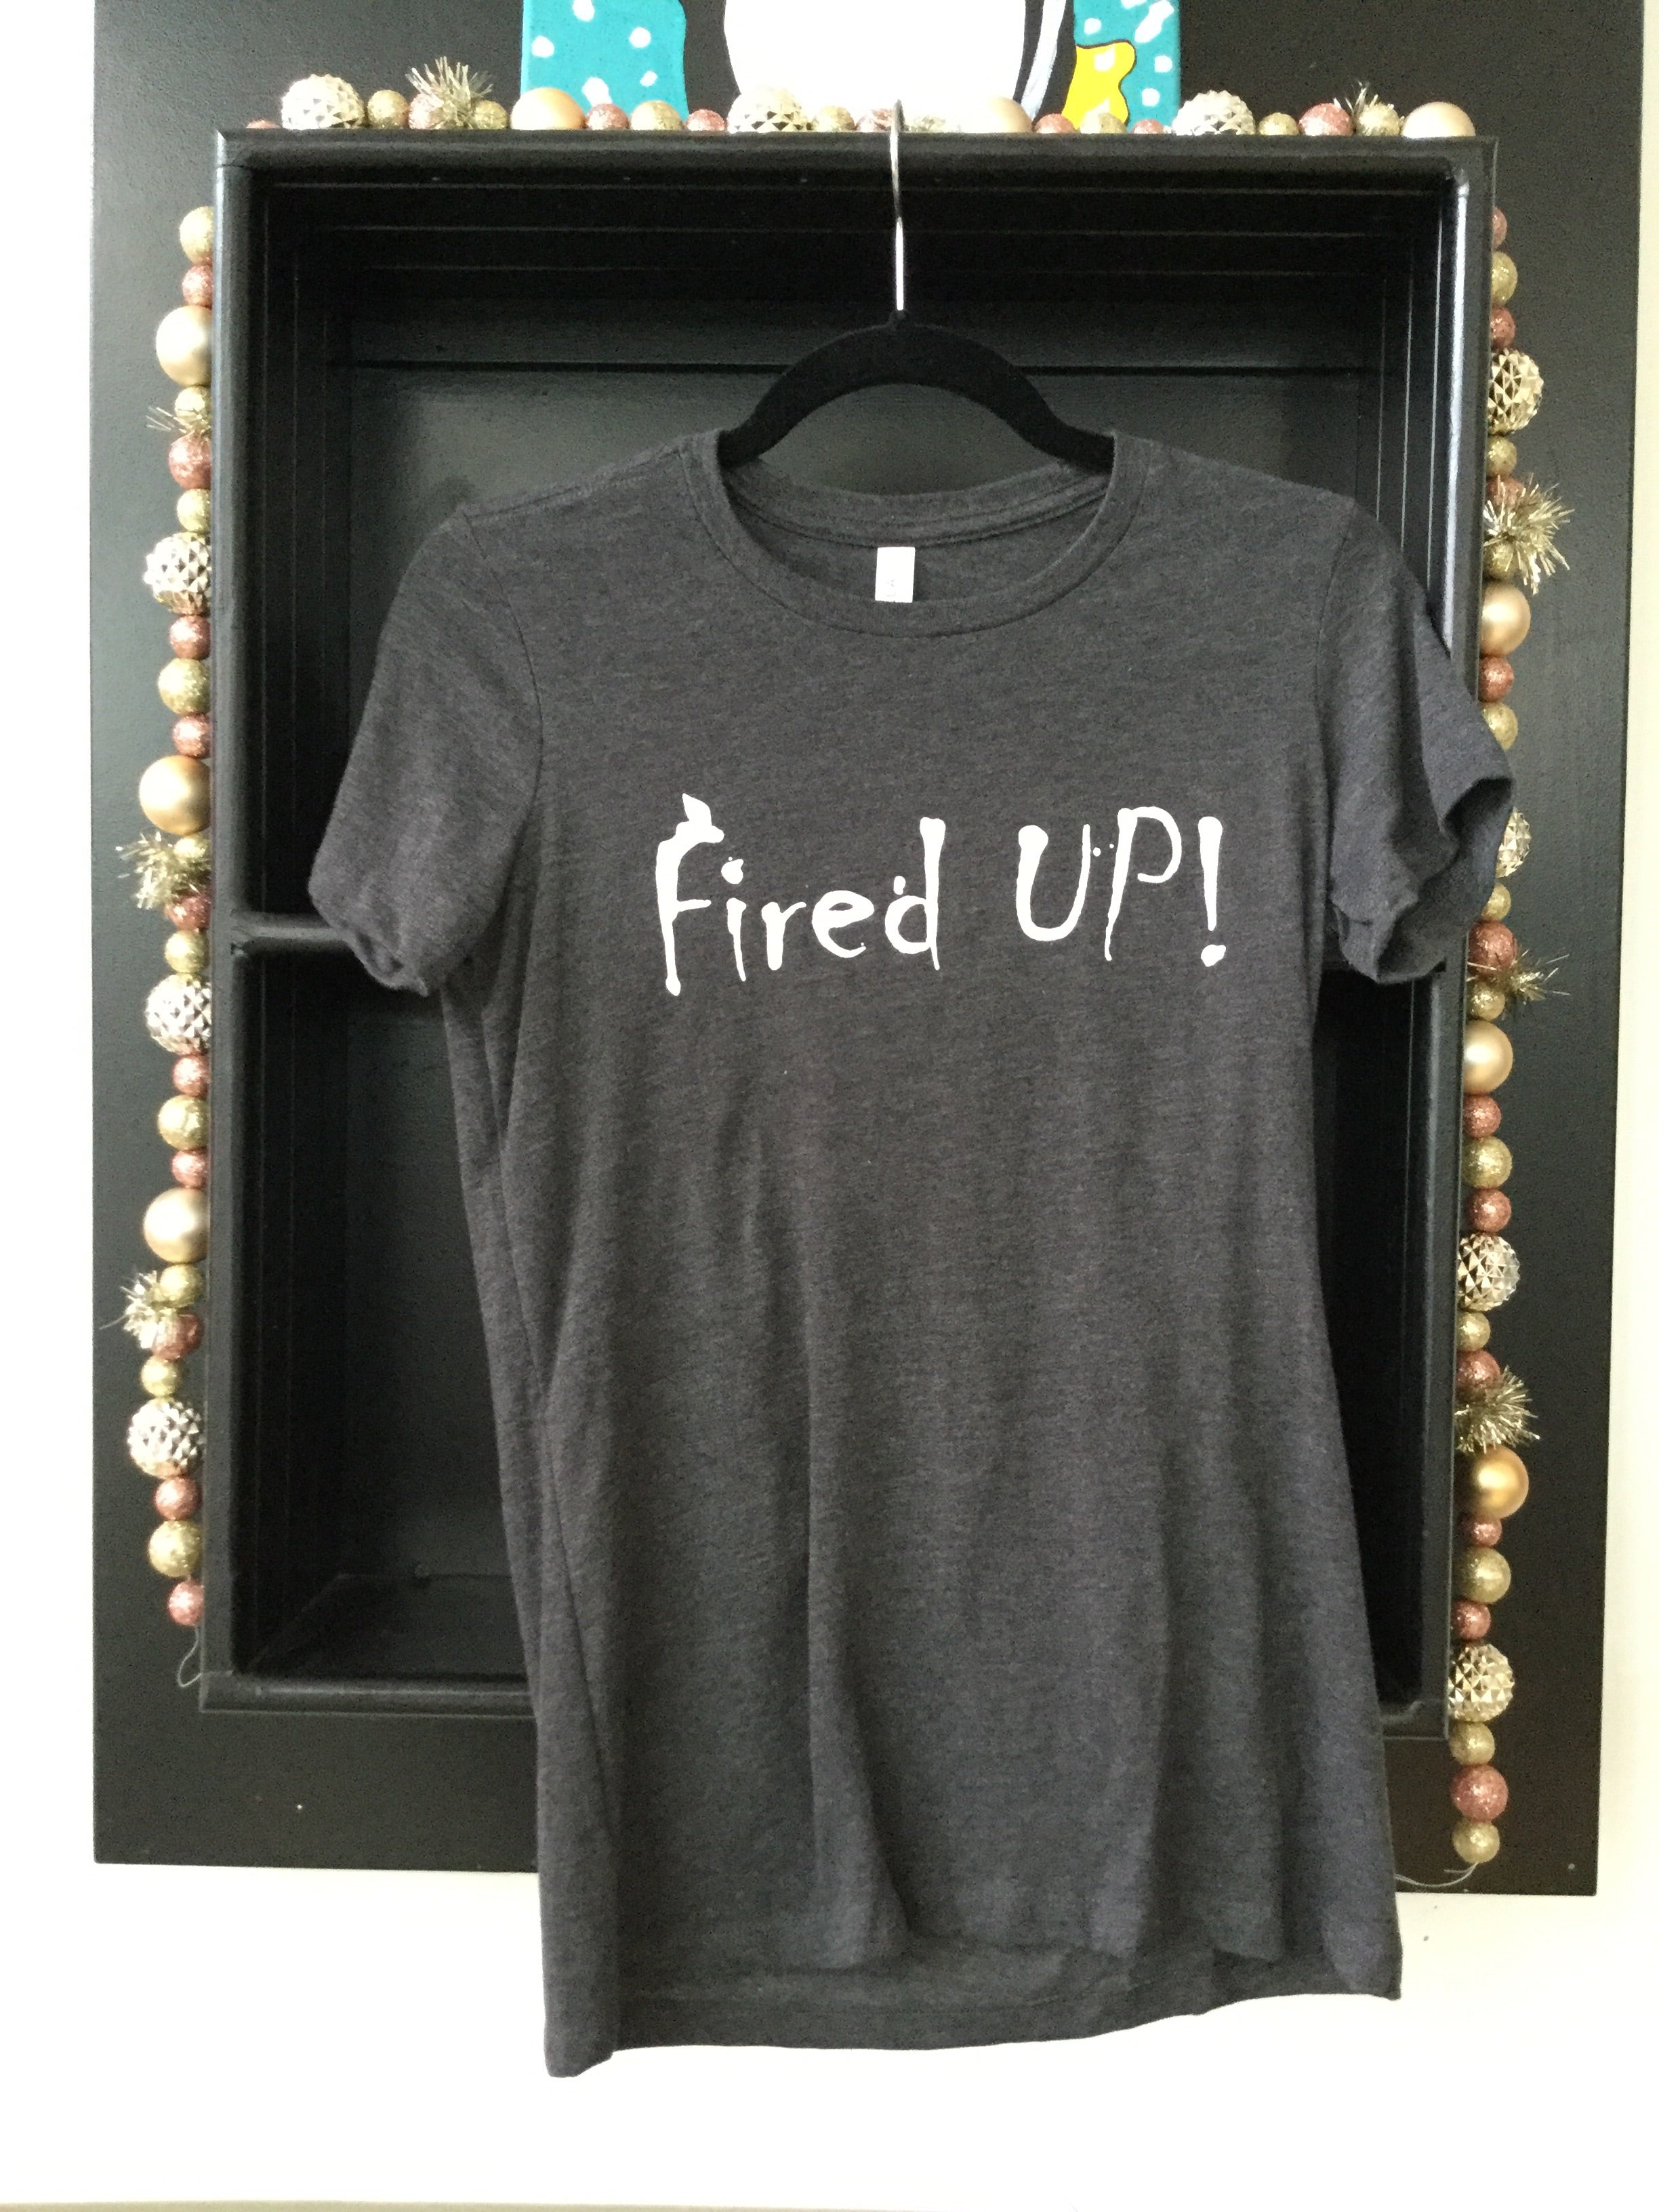 Fired Up! Shirts and Hoodies